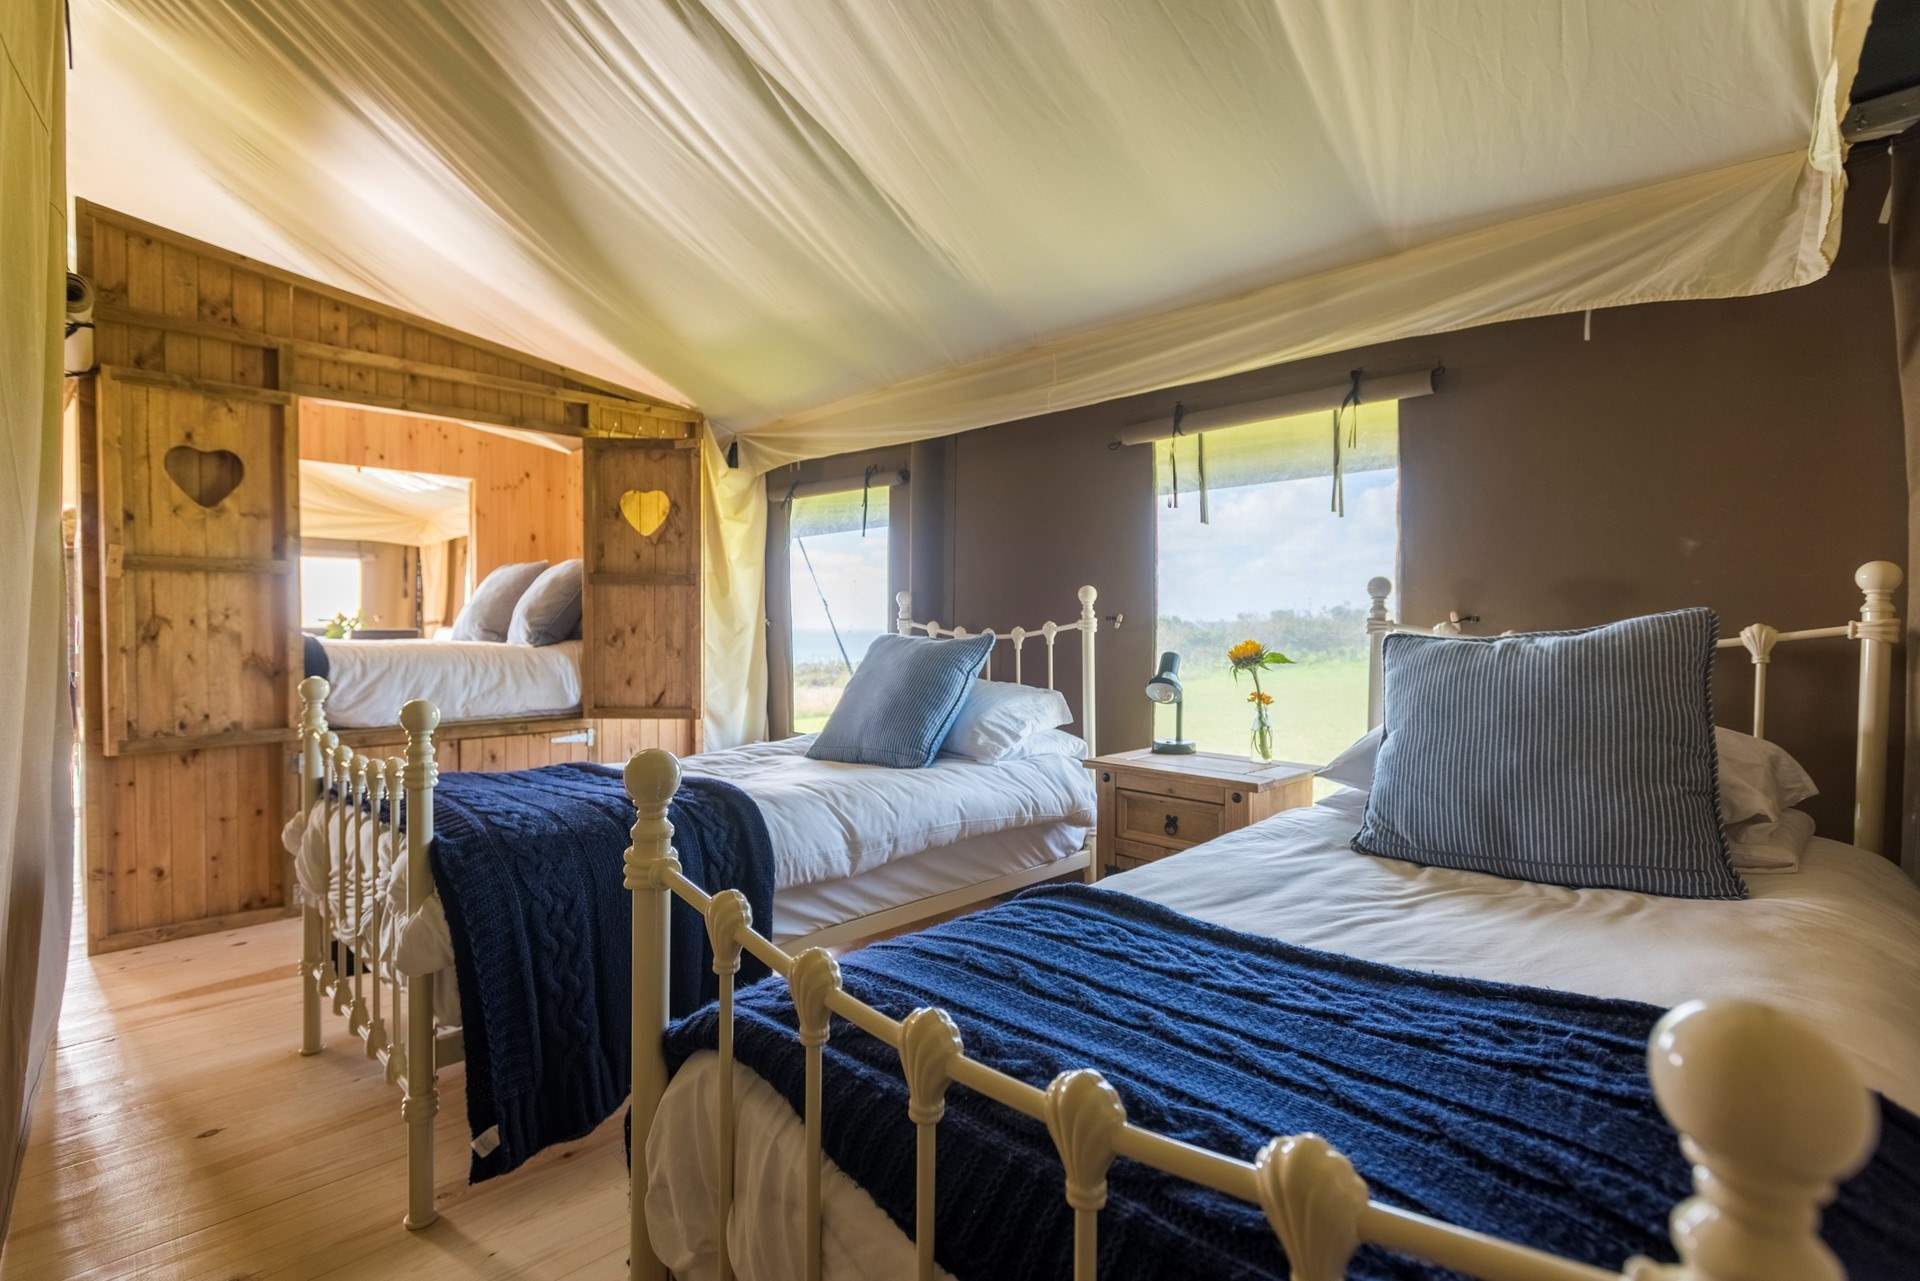 the twin beds looking towards the double cabin bed